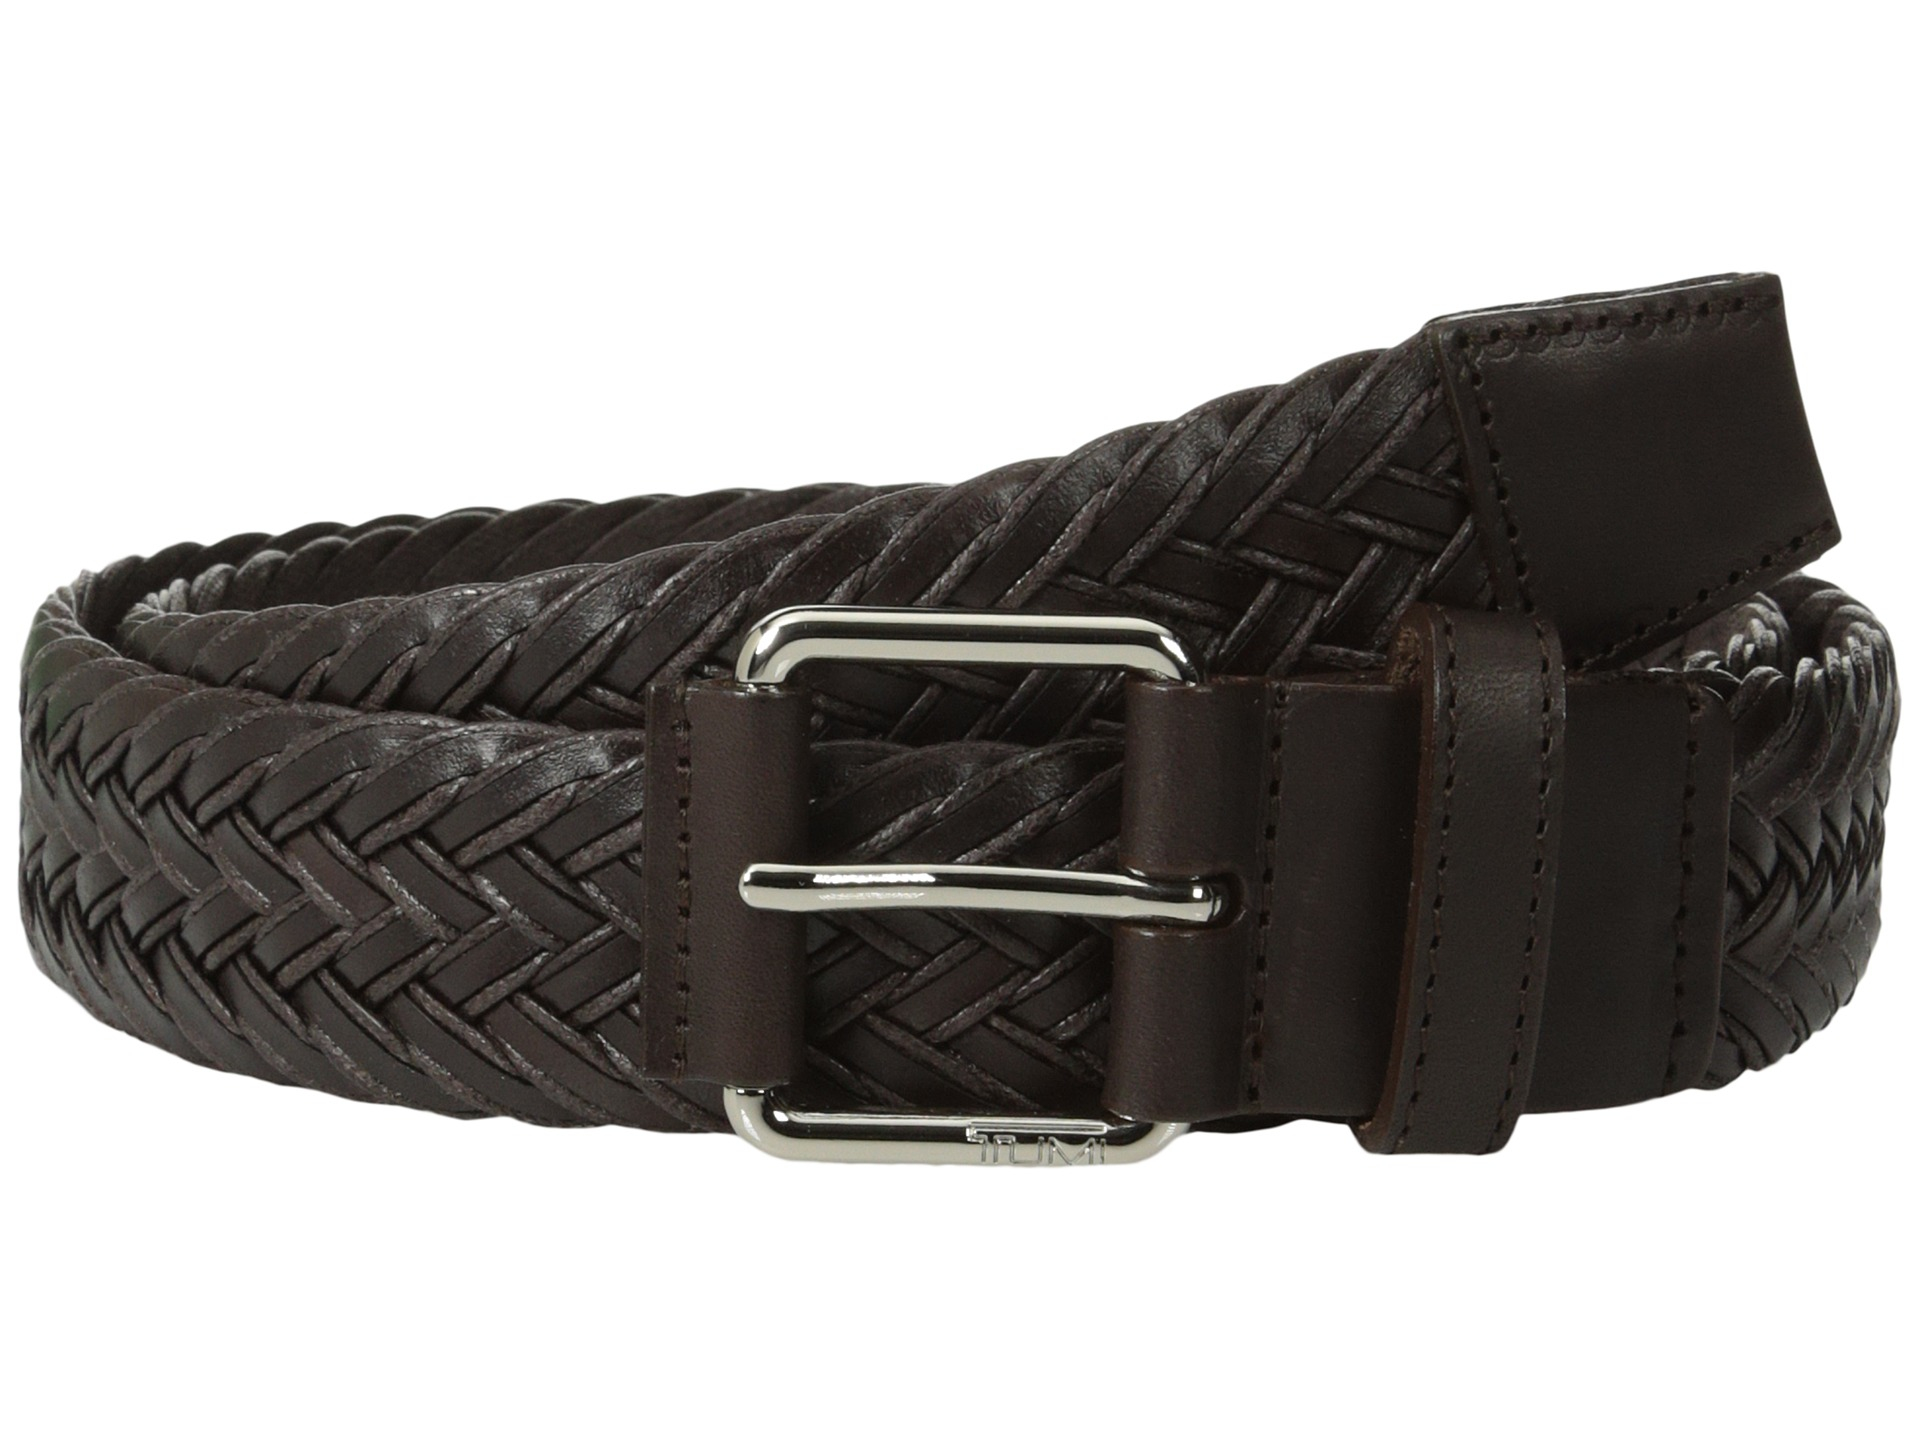 This intricately braided belt is woven with elastic cords to provide a bit of give, while Italian vachetta leather ends give it a refined finish. 1¼